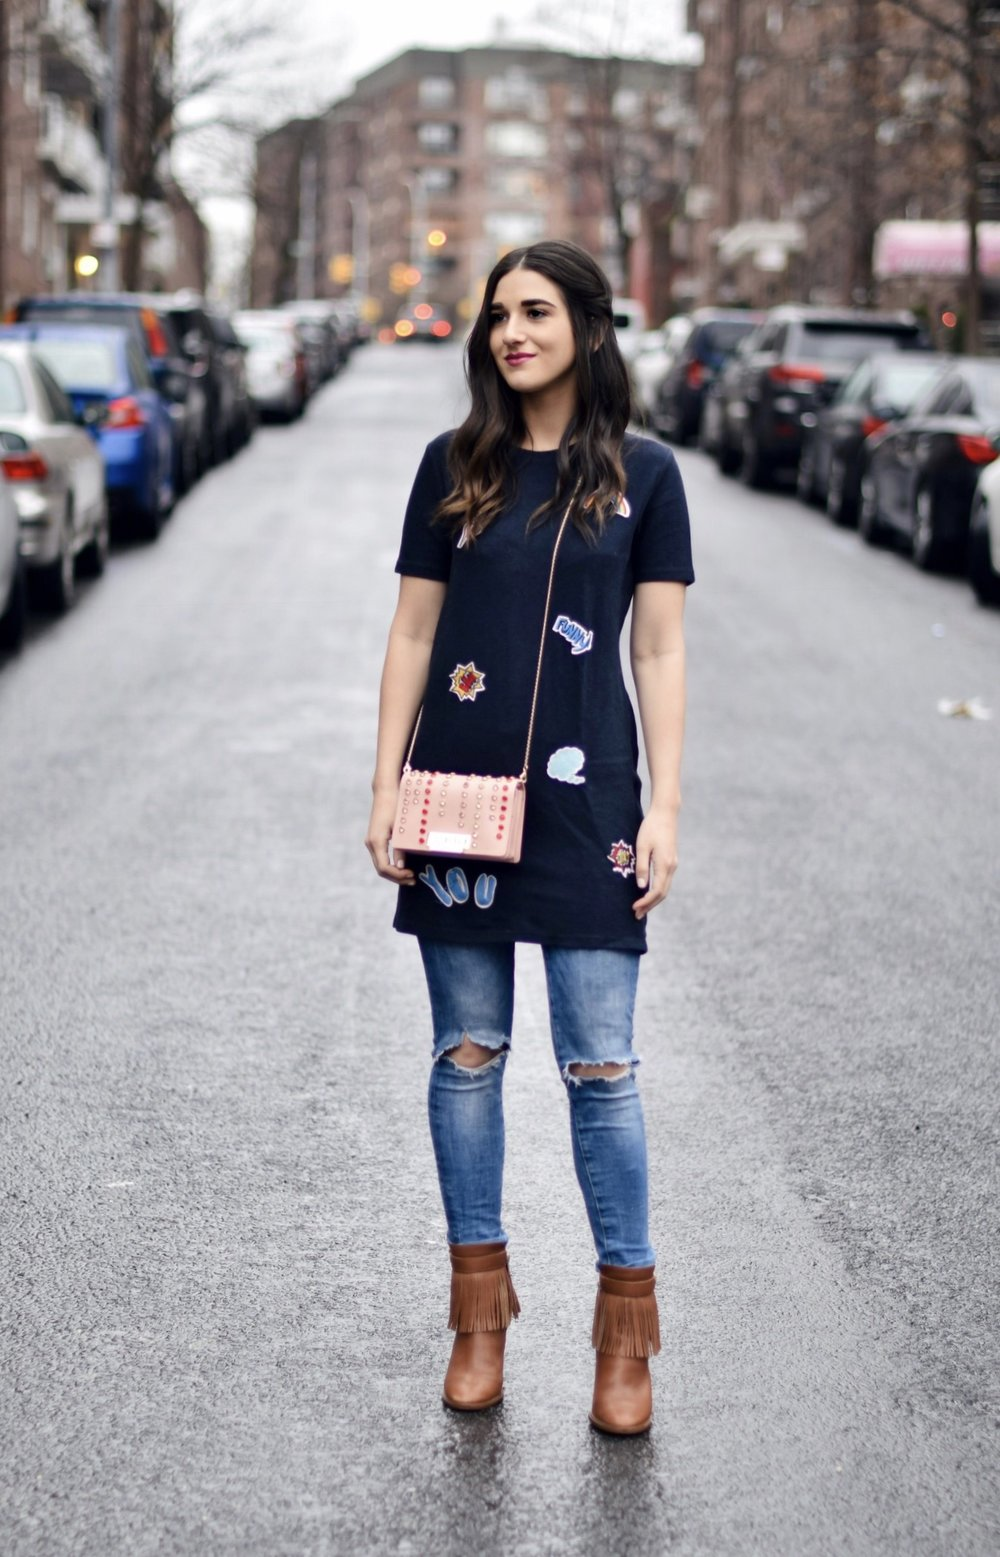 5 Habits You Should Adopt to Become A Better Worker Patch Dress Ripped Jeans Esther Santer Fashion Blog NYC Street Style Blogger Outfit OOTD Trendy Zac Posen Swarovski Bag Sale Online Shopping Zara Jeans Over Dress Styling Fringe Booties Nordstrom Buy.jpg